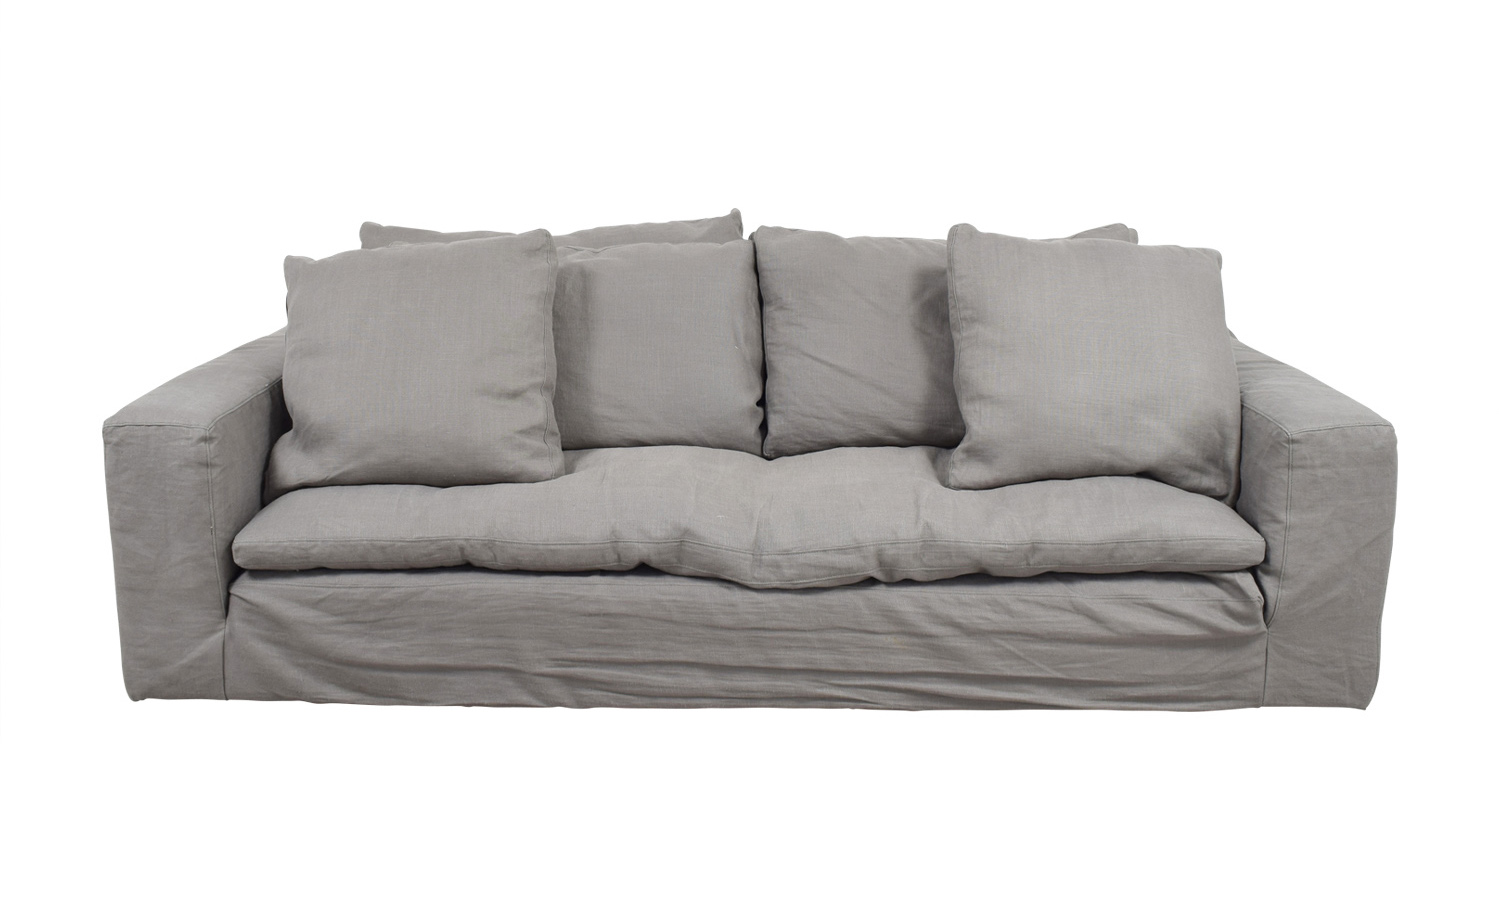 restoration-hardware-grey-cloud-sofa.jpeg